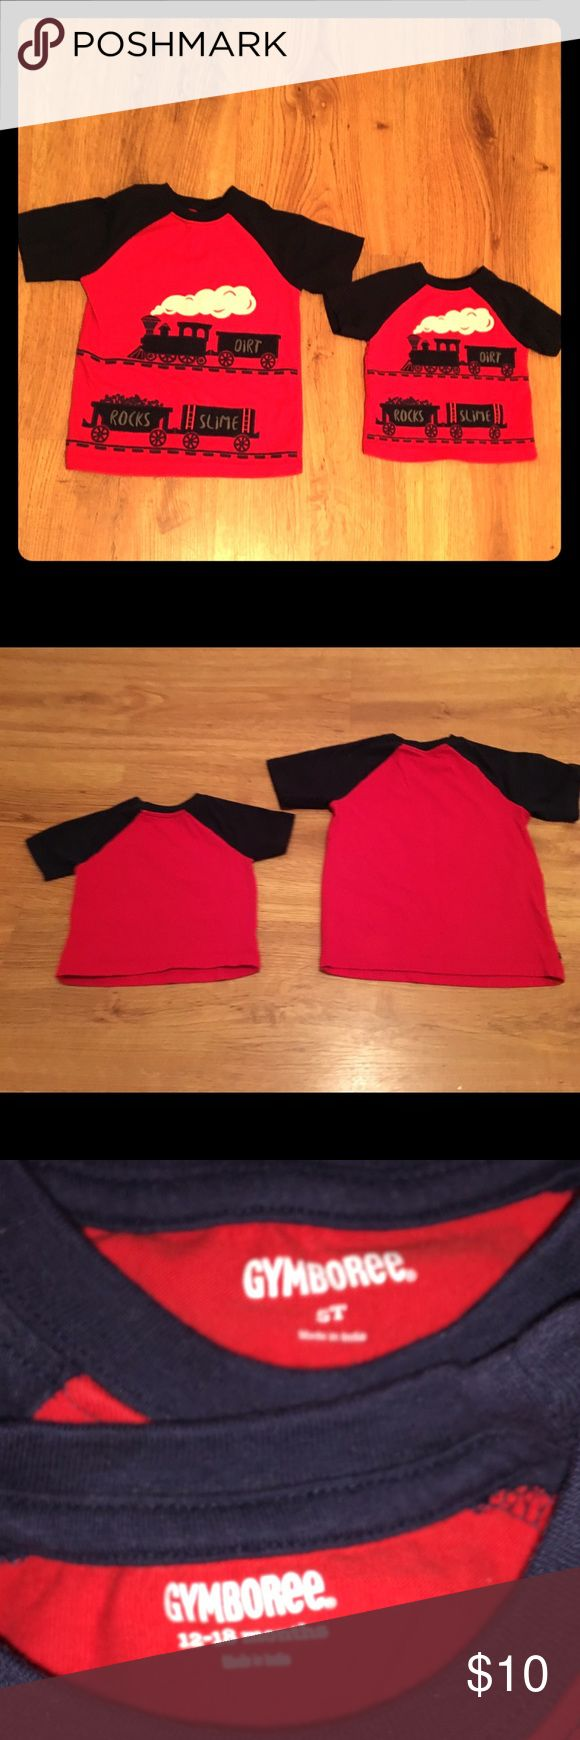 Gymboree Train Tees Gymboree Train Tees for boys is sizes 5T & 12-18 months. Only used once for pics with the grandparents and then washed. In excellent condition. Beautiful raised details. Would love for them to go to a new home together ❤️ Gymboree Shirts & Tops Tees - Short Sleeve